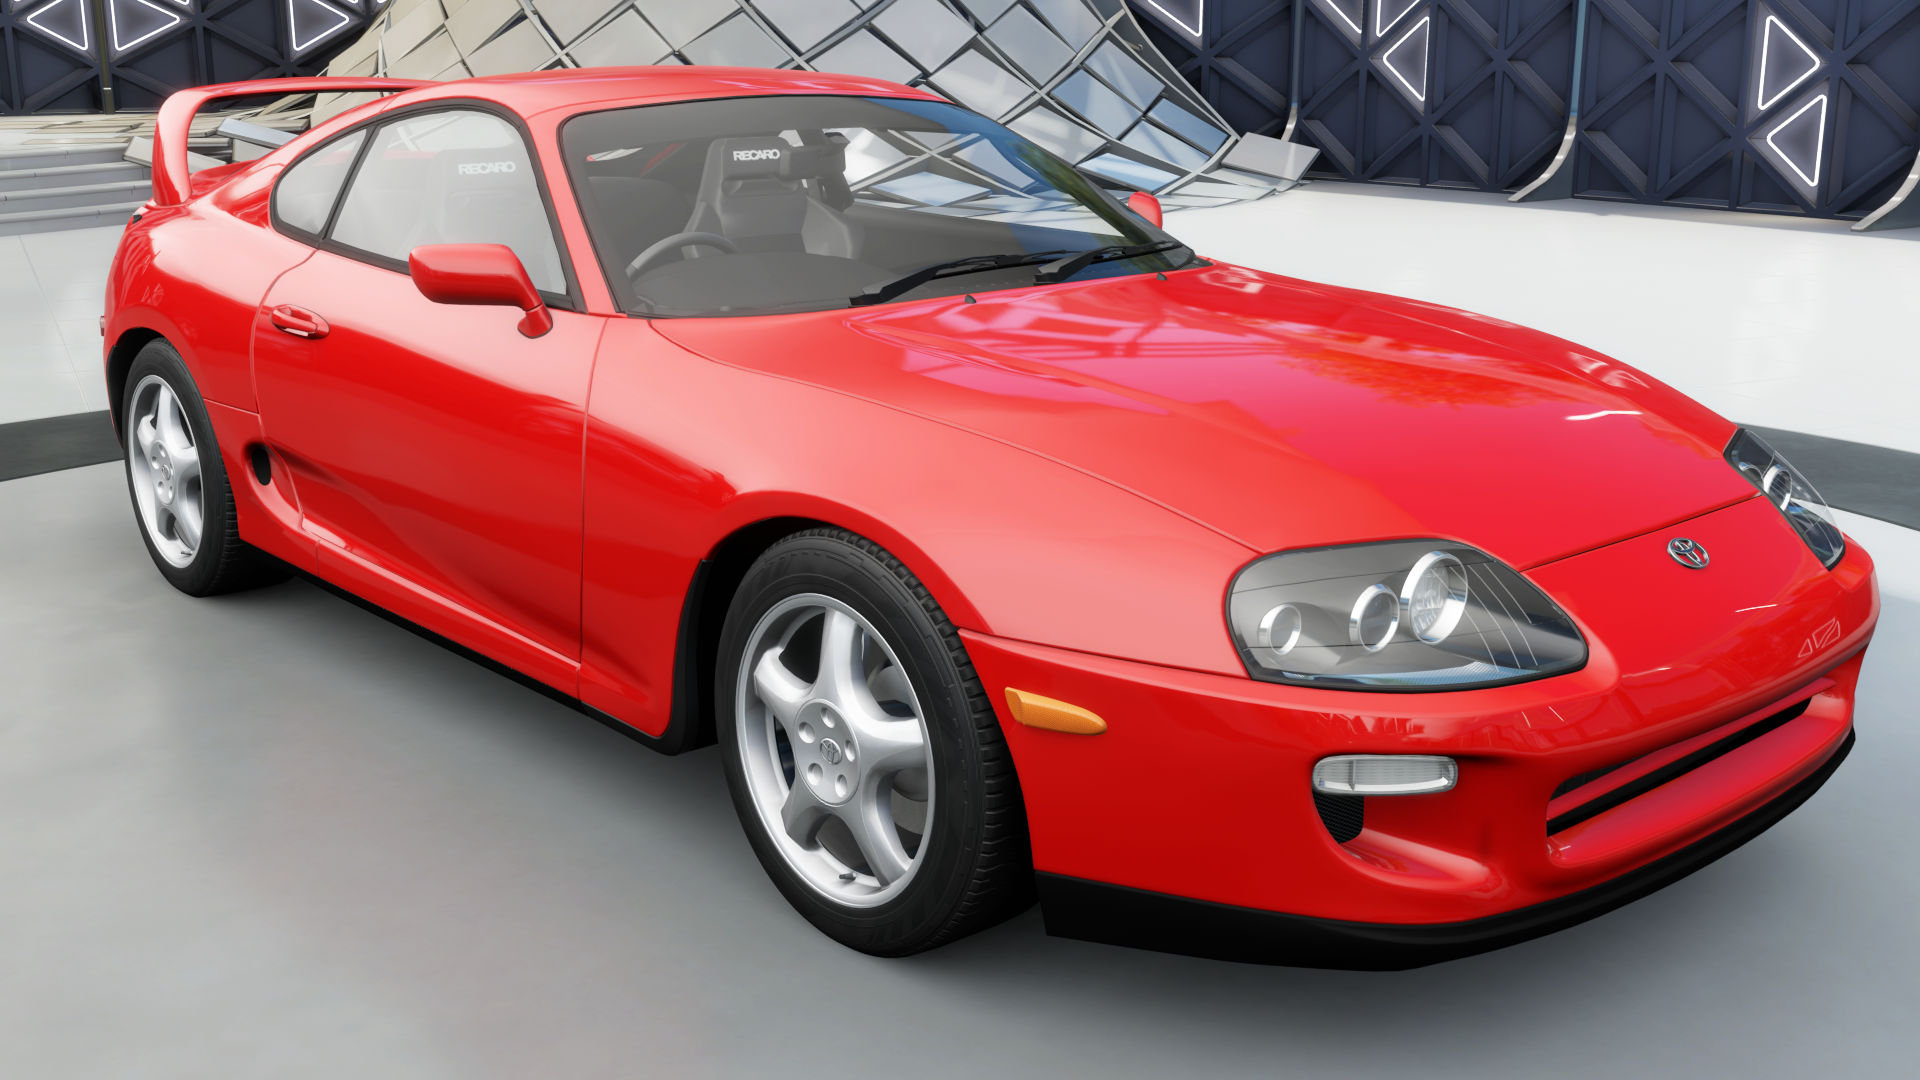 toyota supra rz forza motorsport wiki fandom powered by wikia. Black Bedroom Furniture Sets. Home Design Ideas